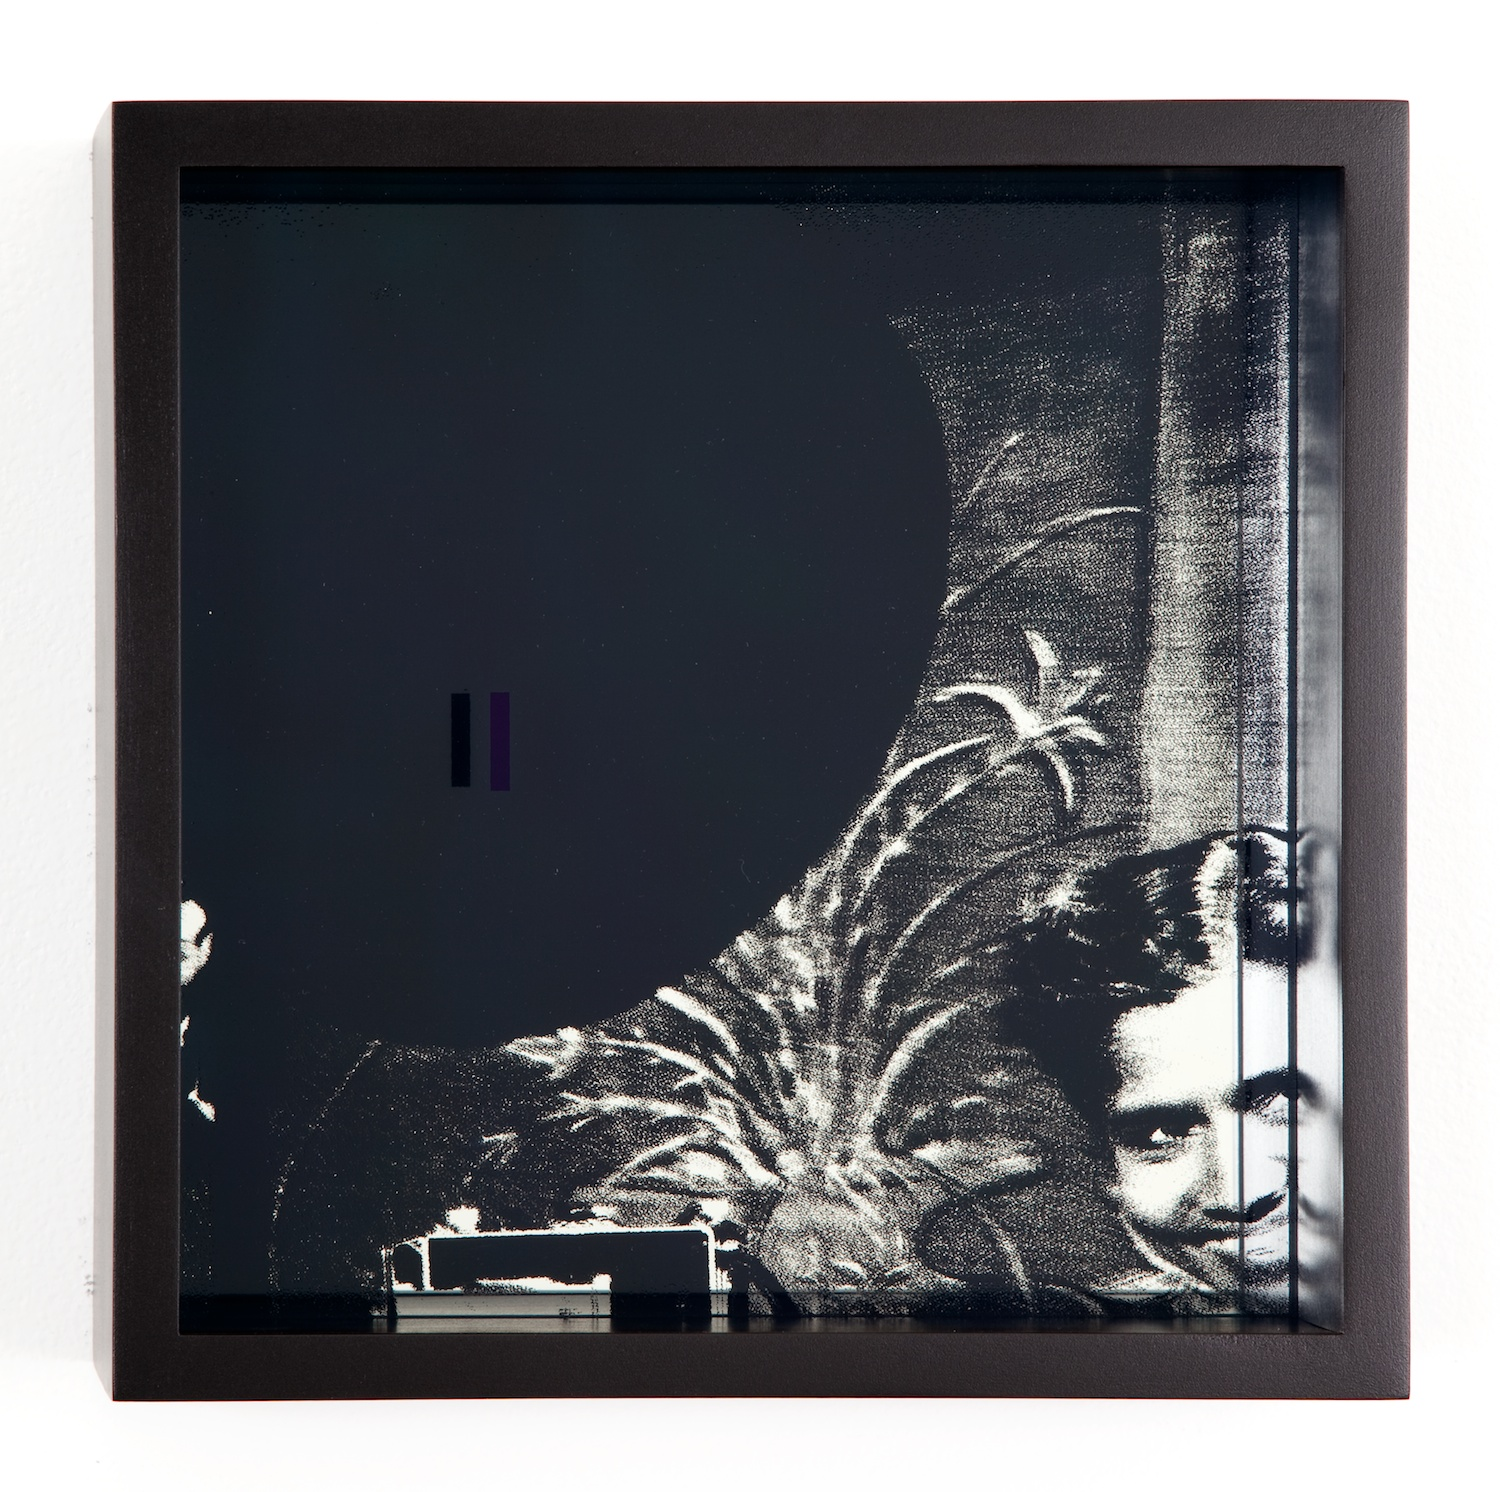 Adam Pendleton  System of Display, I (INFINITY/G.R. Naidoo, photographer Priscilla Moodley, 1960)  2011 Silkscreen on glass and mirror 9 ⅞h x 9 ⅞w x 3d in AdamP009